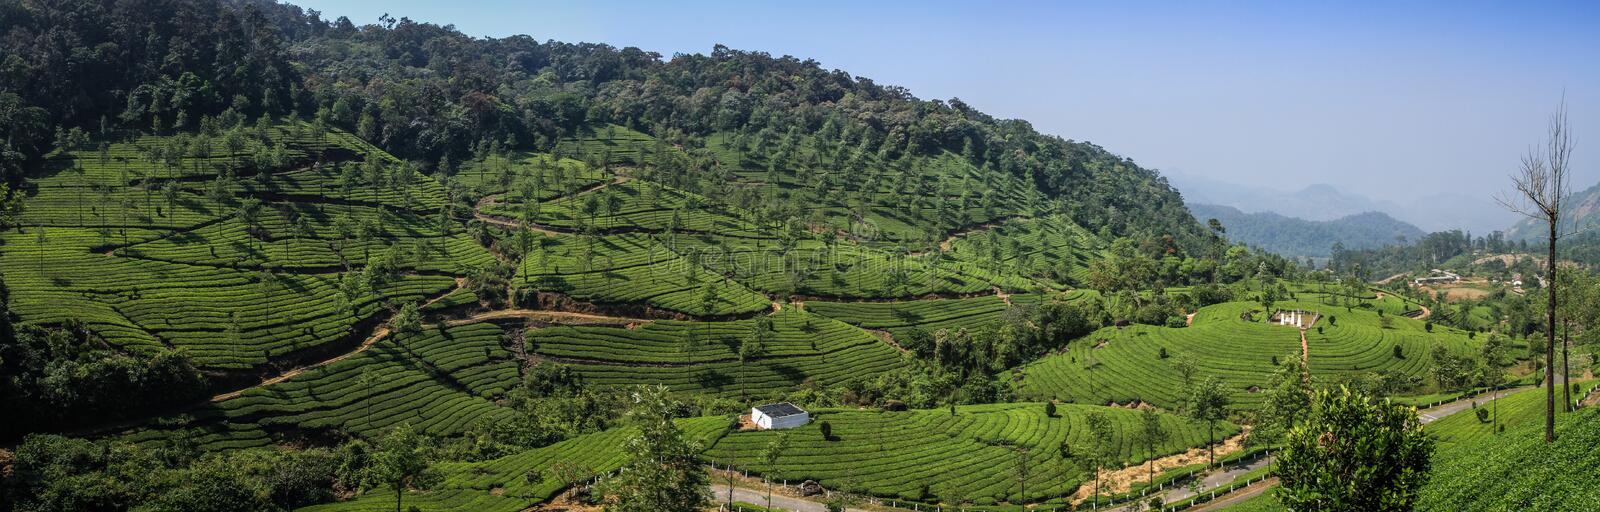 Panoramic view of the green lush tea hills and mountains around Munnar, Kerala, India royalty free stock photo